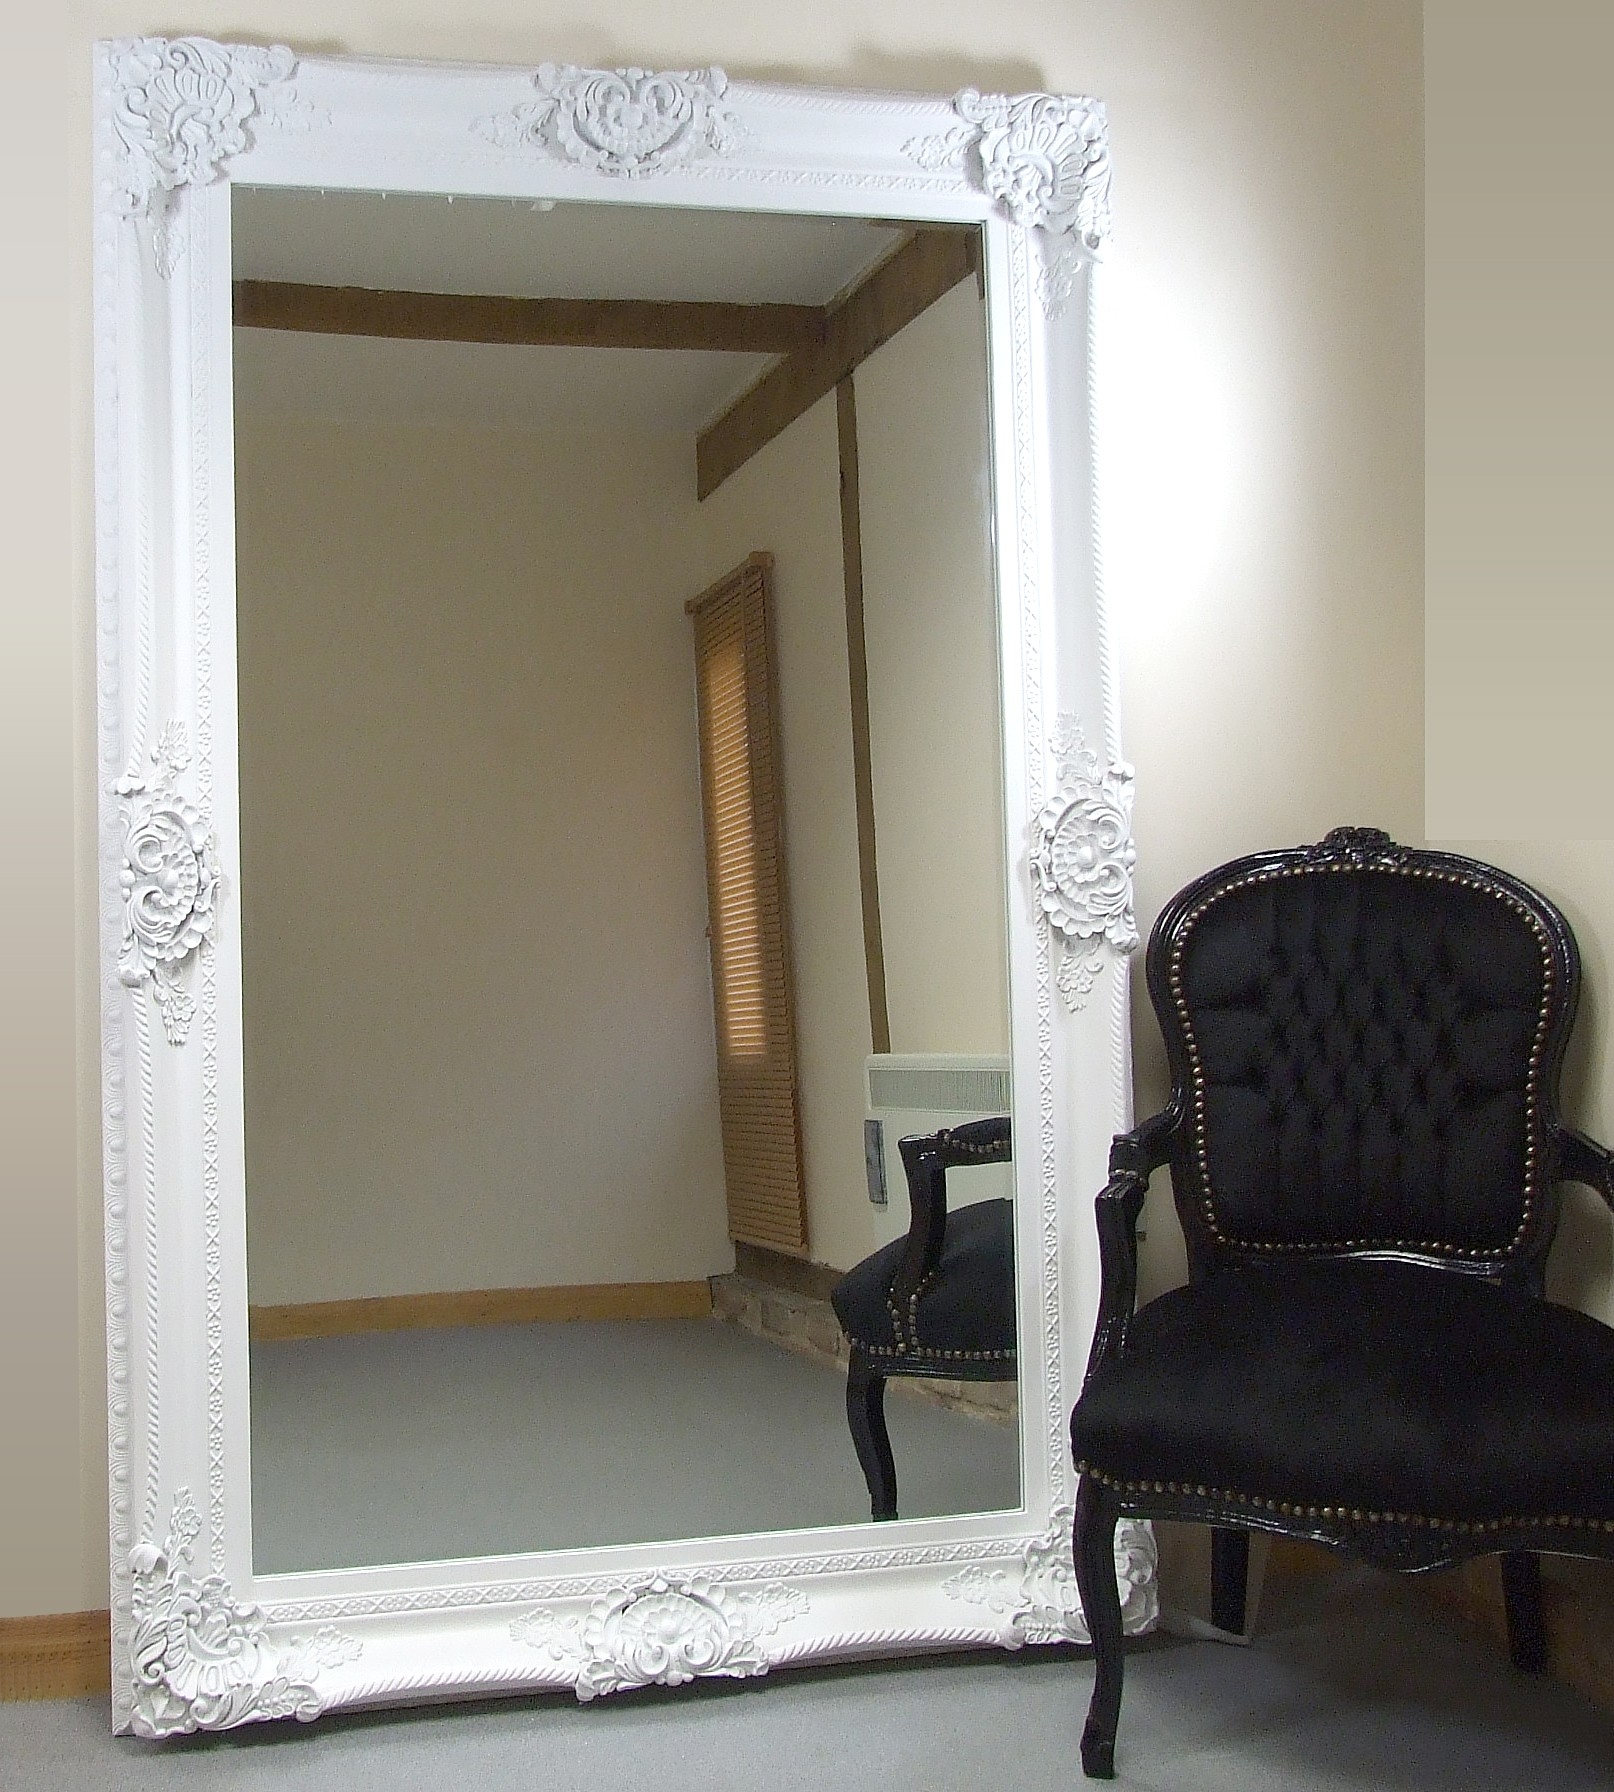 Seville Ornate Extra Large French Full Length Wall Leaner Mirror For French Full Length Mirror (Image 14 of 15)